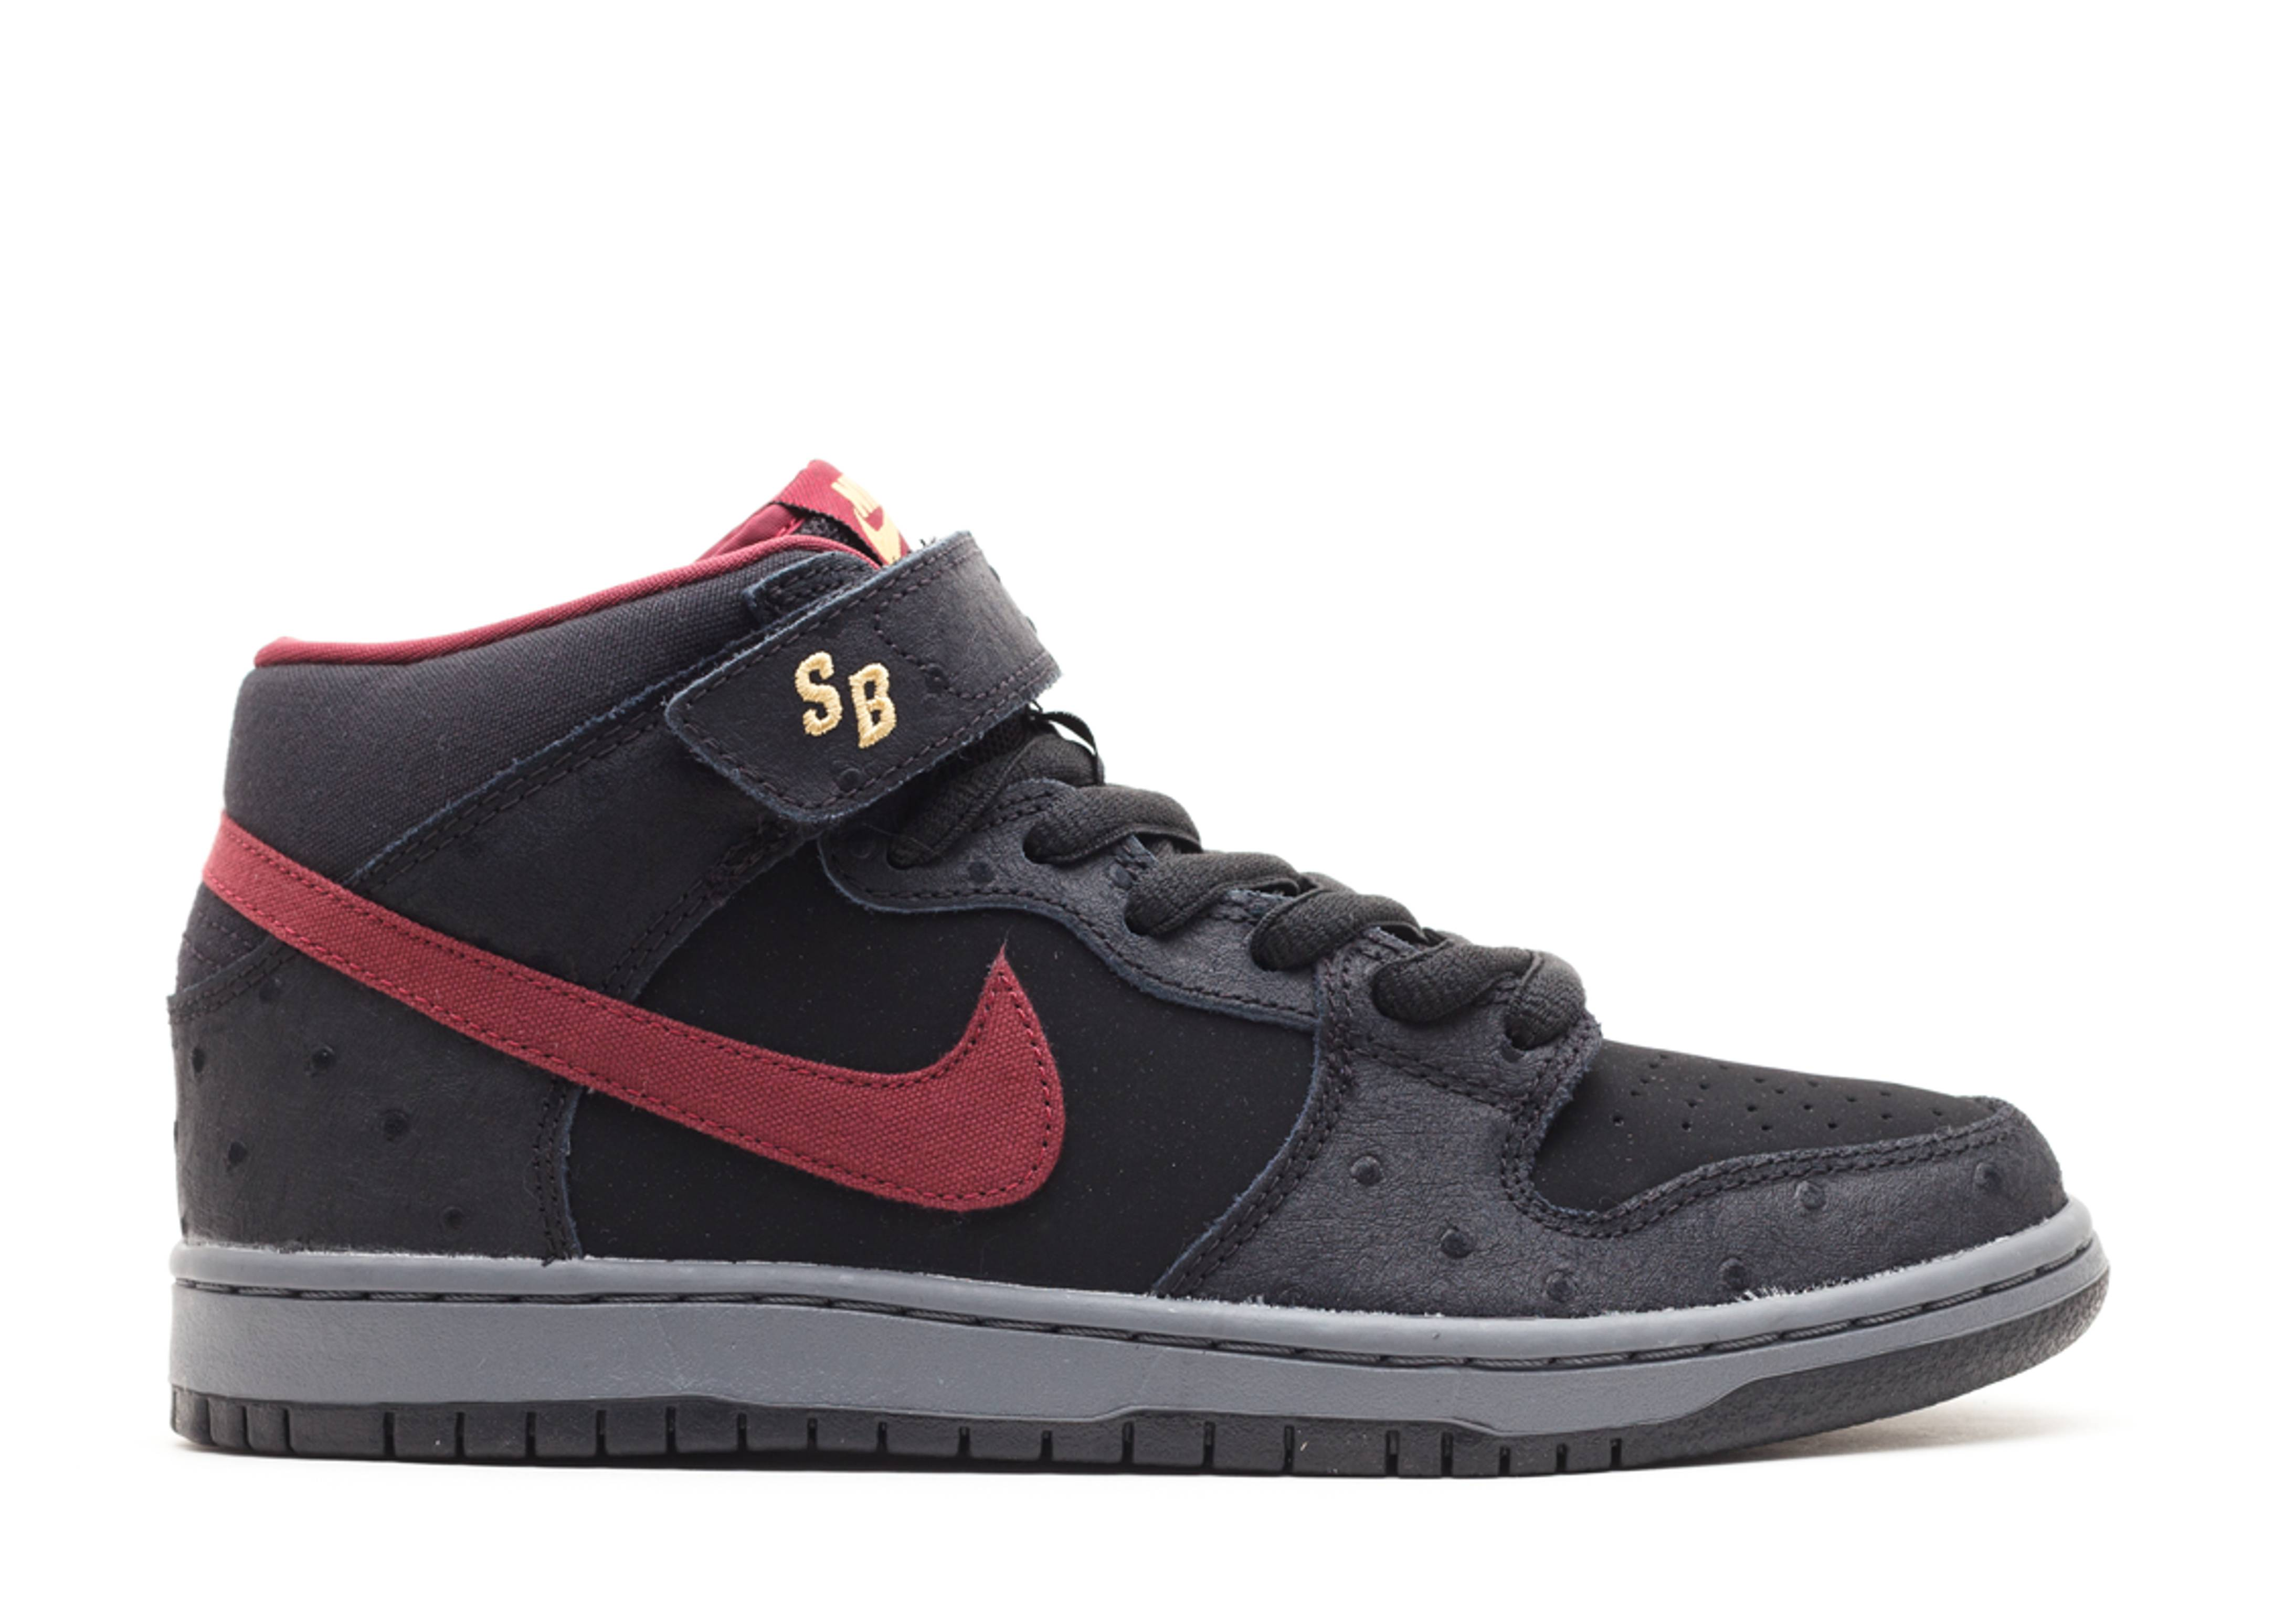 bfe95d93a3e0aa Dunk Mid Pro Sb - Nike - 314383 060 - black cherrywood red-light ...